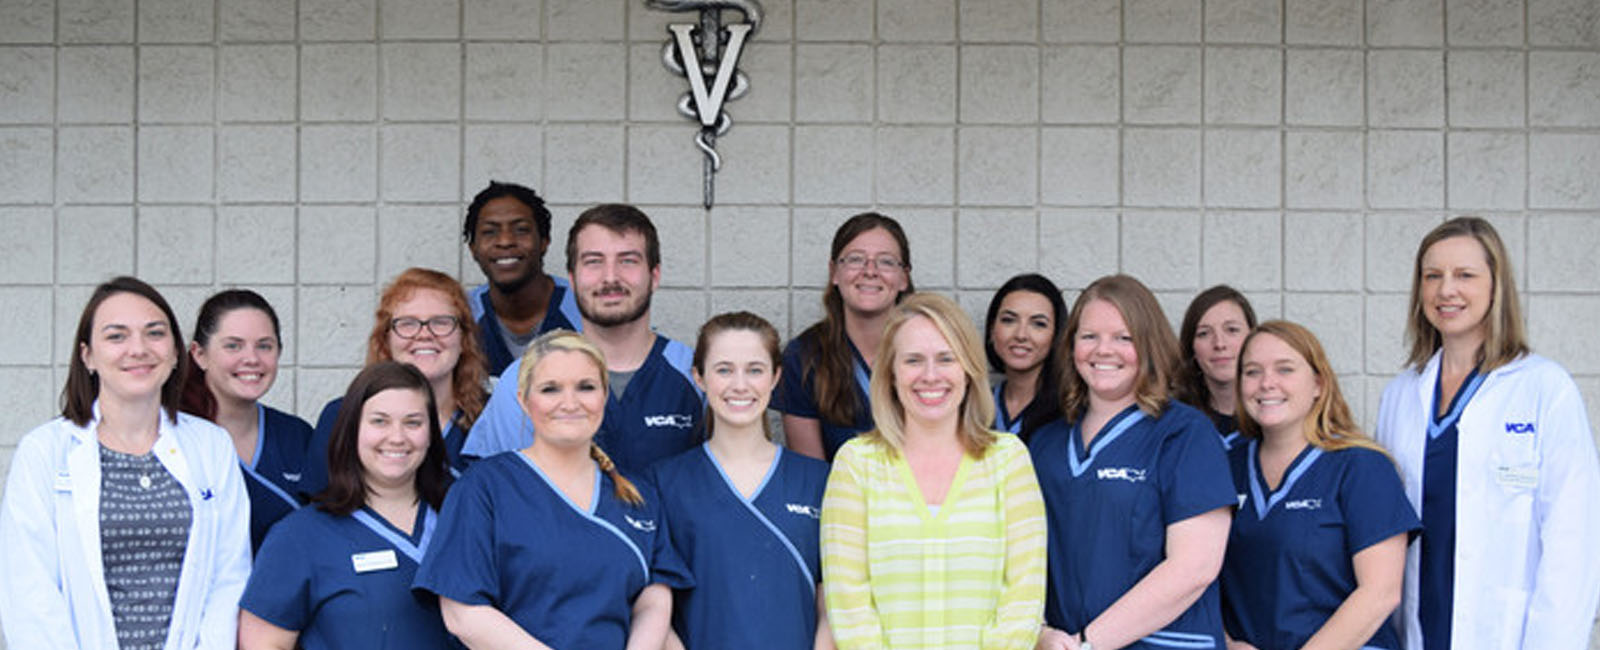 Homepage Team Picture of VCA Becker Animal Hospital